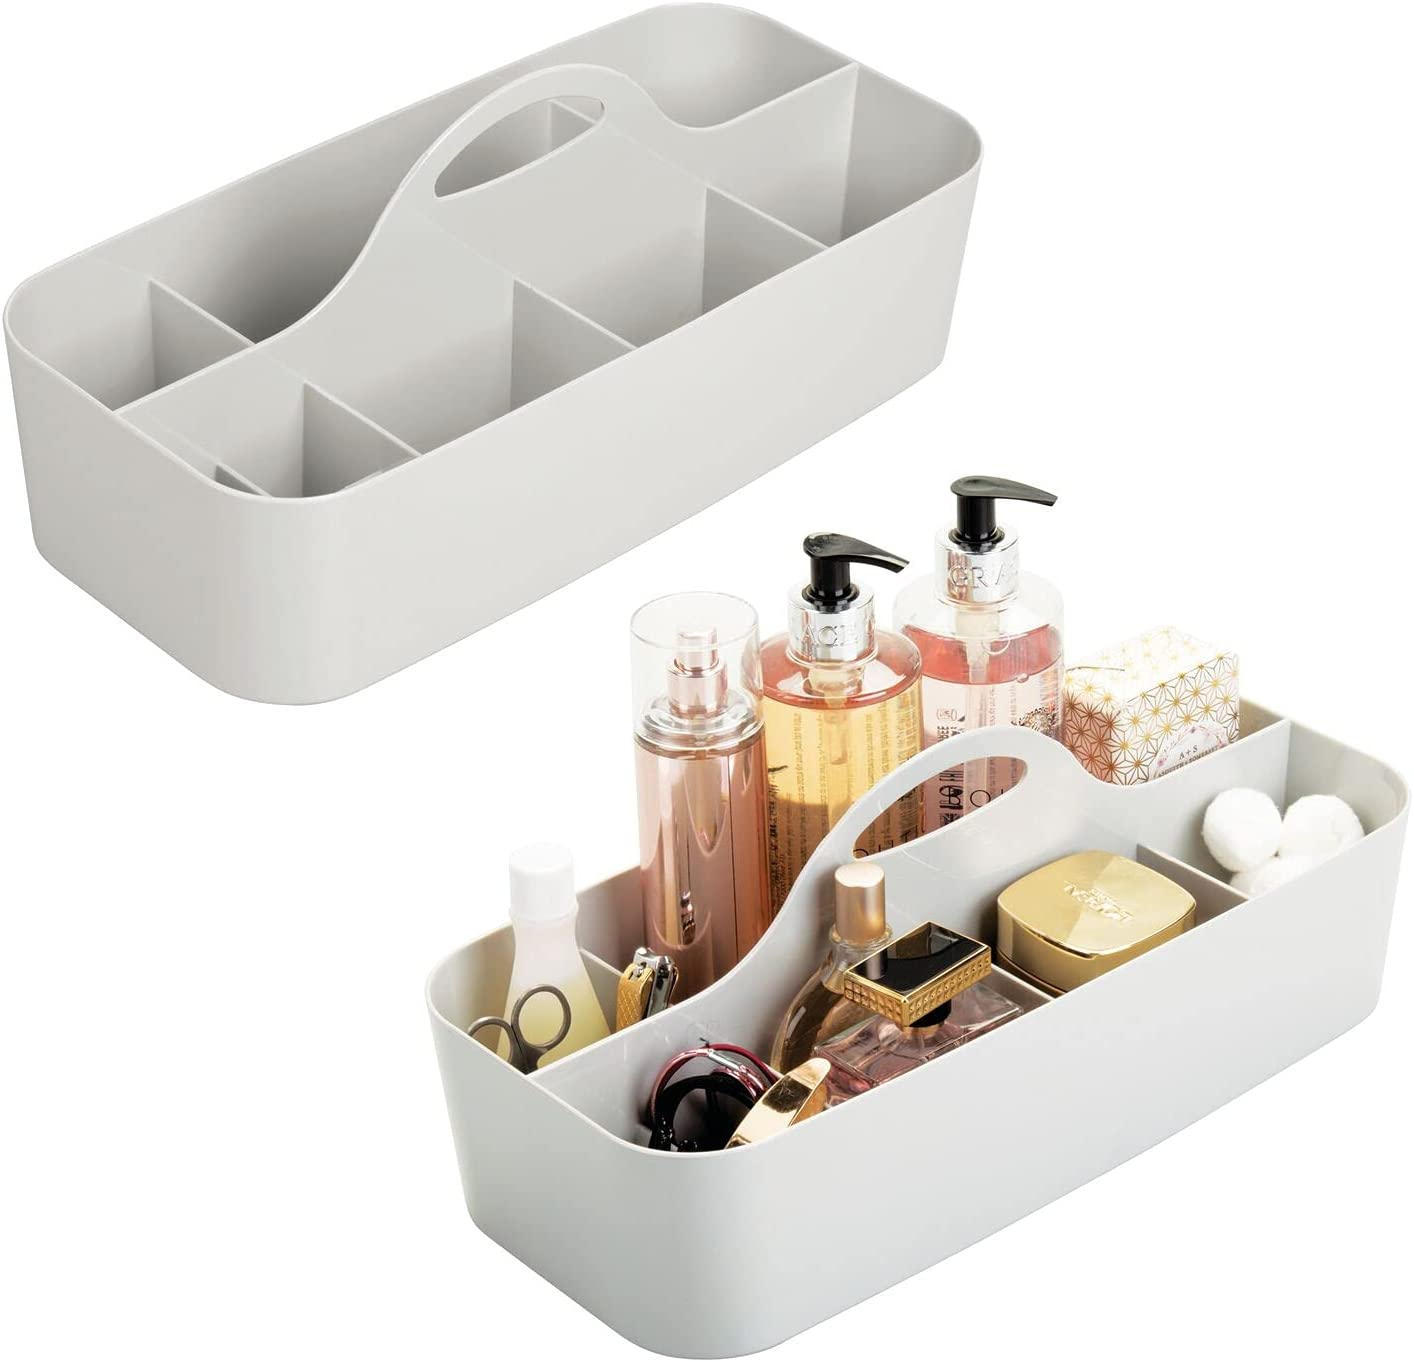 mDesign Plastic Portable Storage Lowest price challenge Organizer Tote - Free Shipping New Caddy Divided